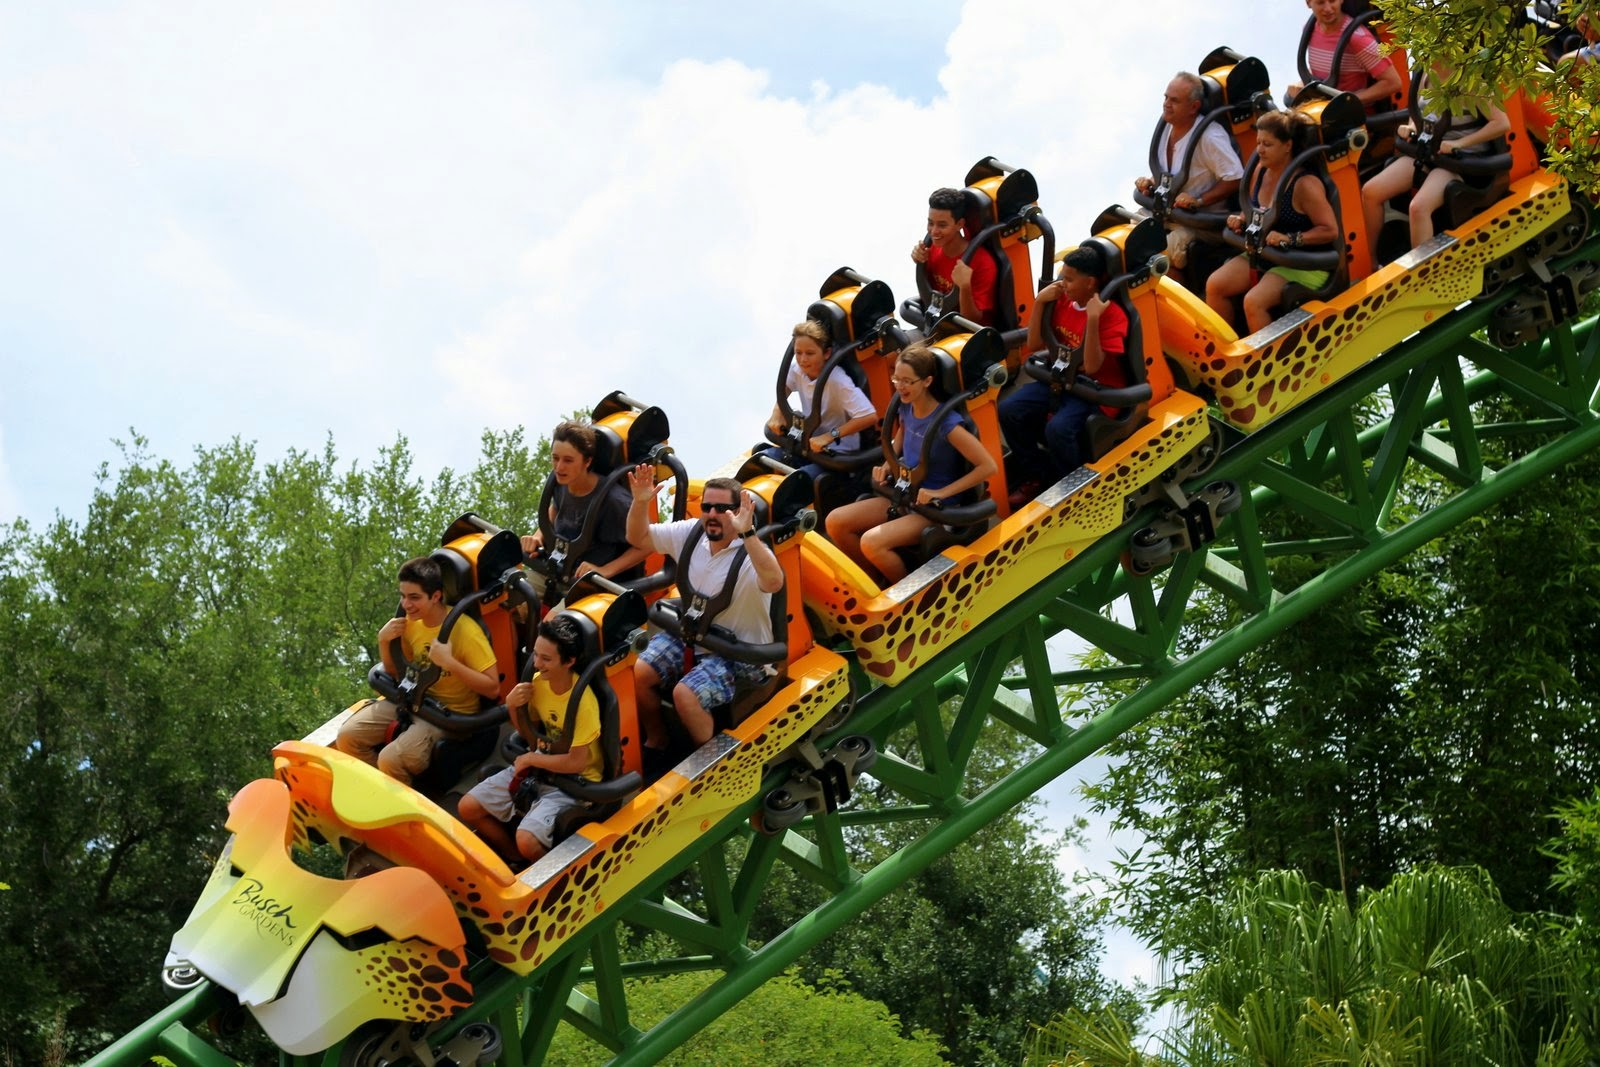 Because I'm Me Busch Gardens summer family adventure, find out what's new, what's happening, and how to save a little cash